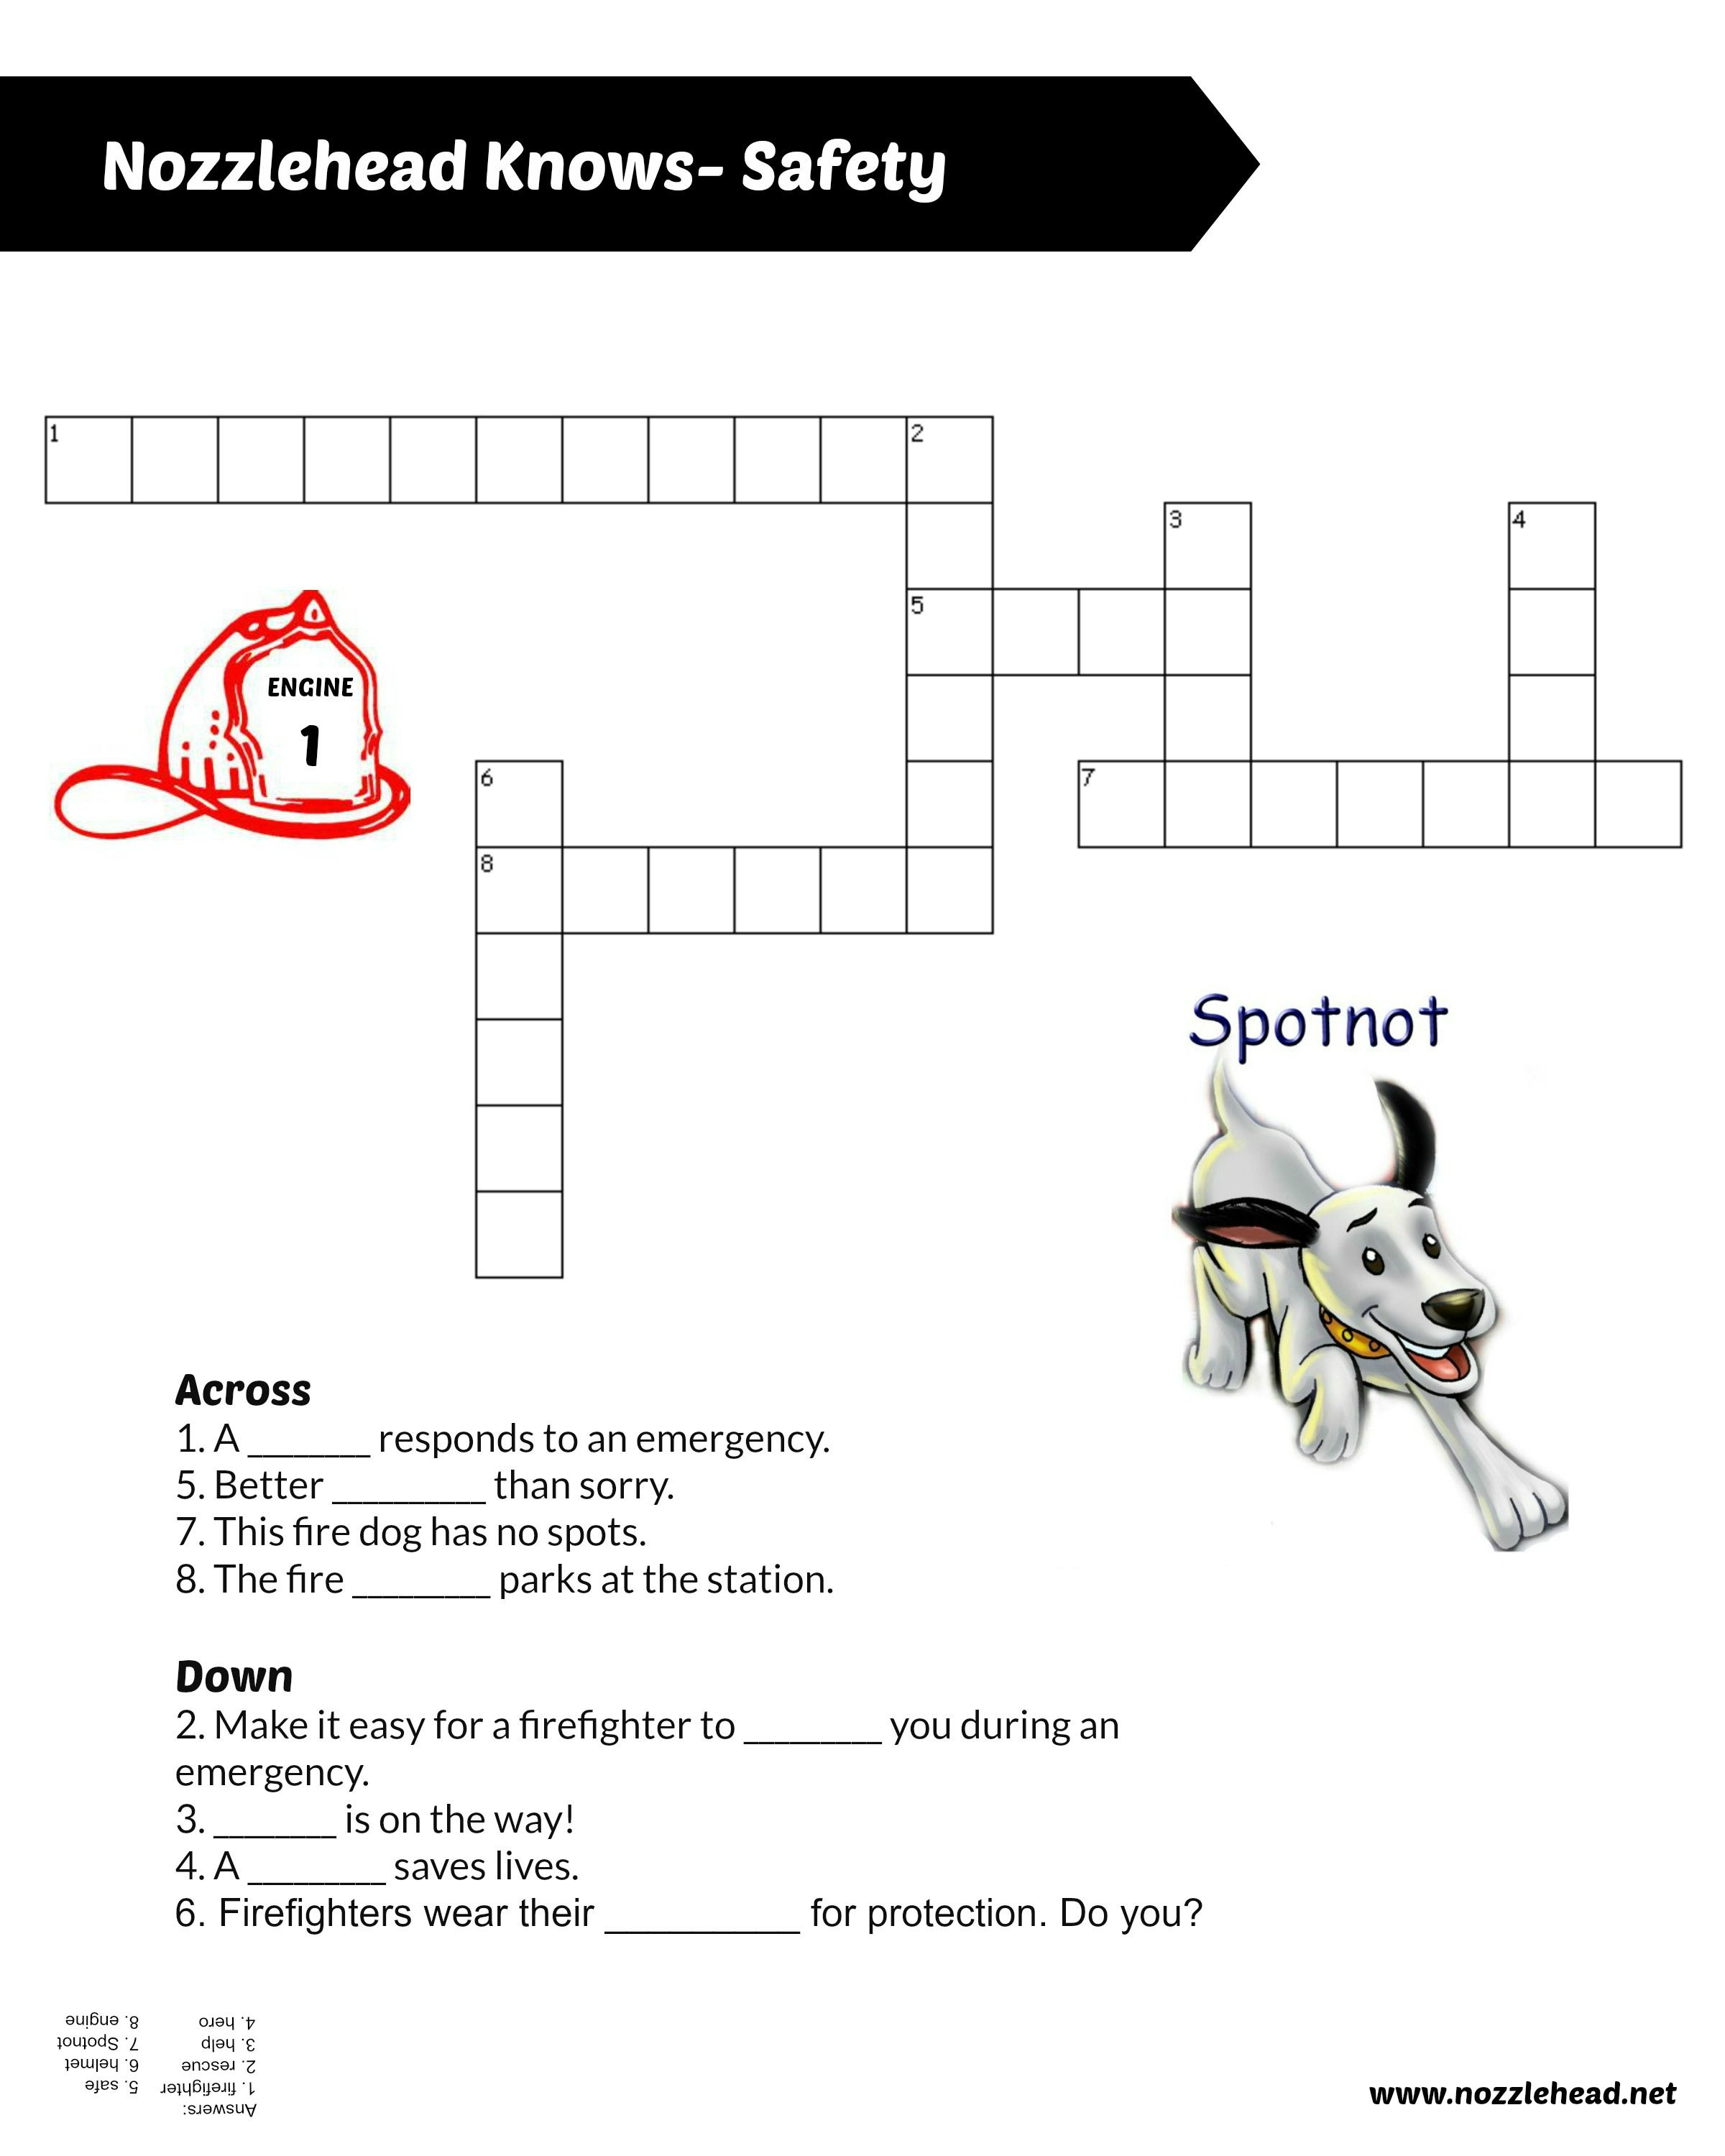 Nozzlehead Knows Safety Firefighter Crossword Puzzle For